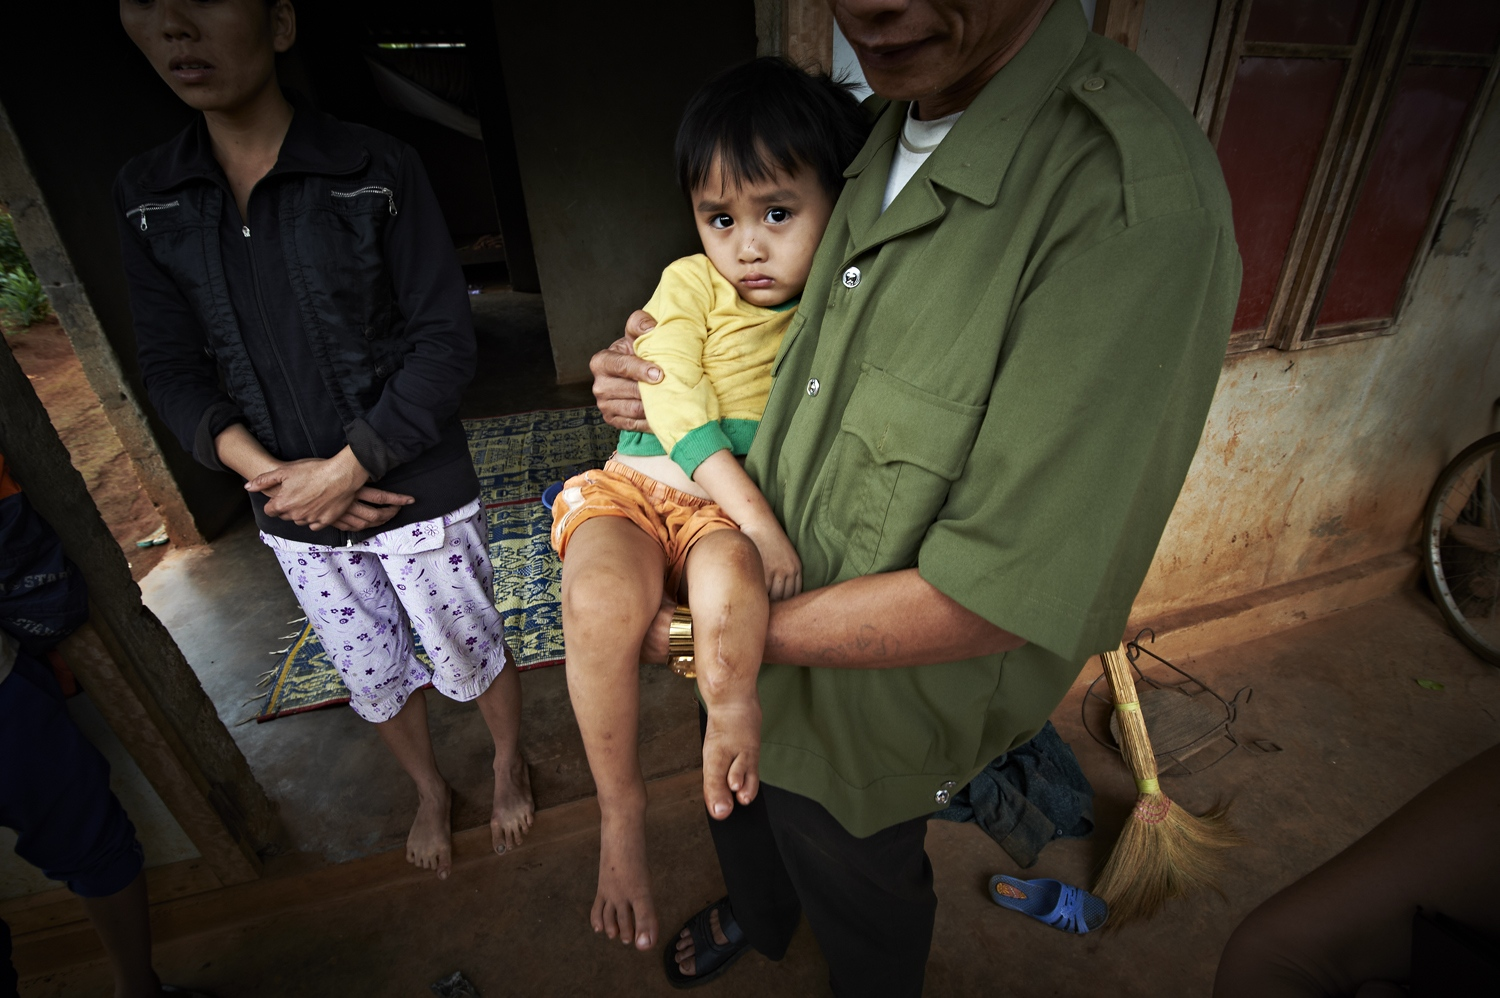 Le DInh Nam (Male, born in 2009) has a congenital deformation, with four toes on the right foot and deformed left foot toes. He has undergone surgery before, but his tibia continue to deform while fibula seem to have disappeared. This boy's father was not directly involved in the War, but was hit on his shoulder with a piece of land mine that had exploded while cleaning out land mines from an area heavily contaminated by the chemical weapon. This boy is one of the many victims of the environmental pollution caused by the Agent Orange. (Dec. 8, 2012)